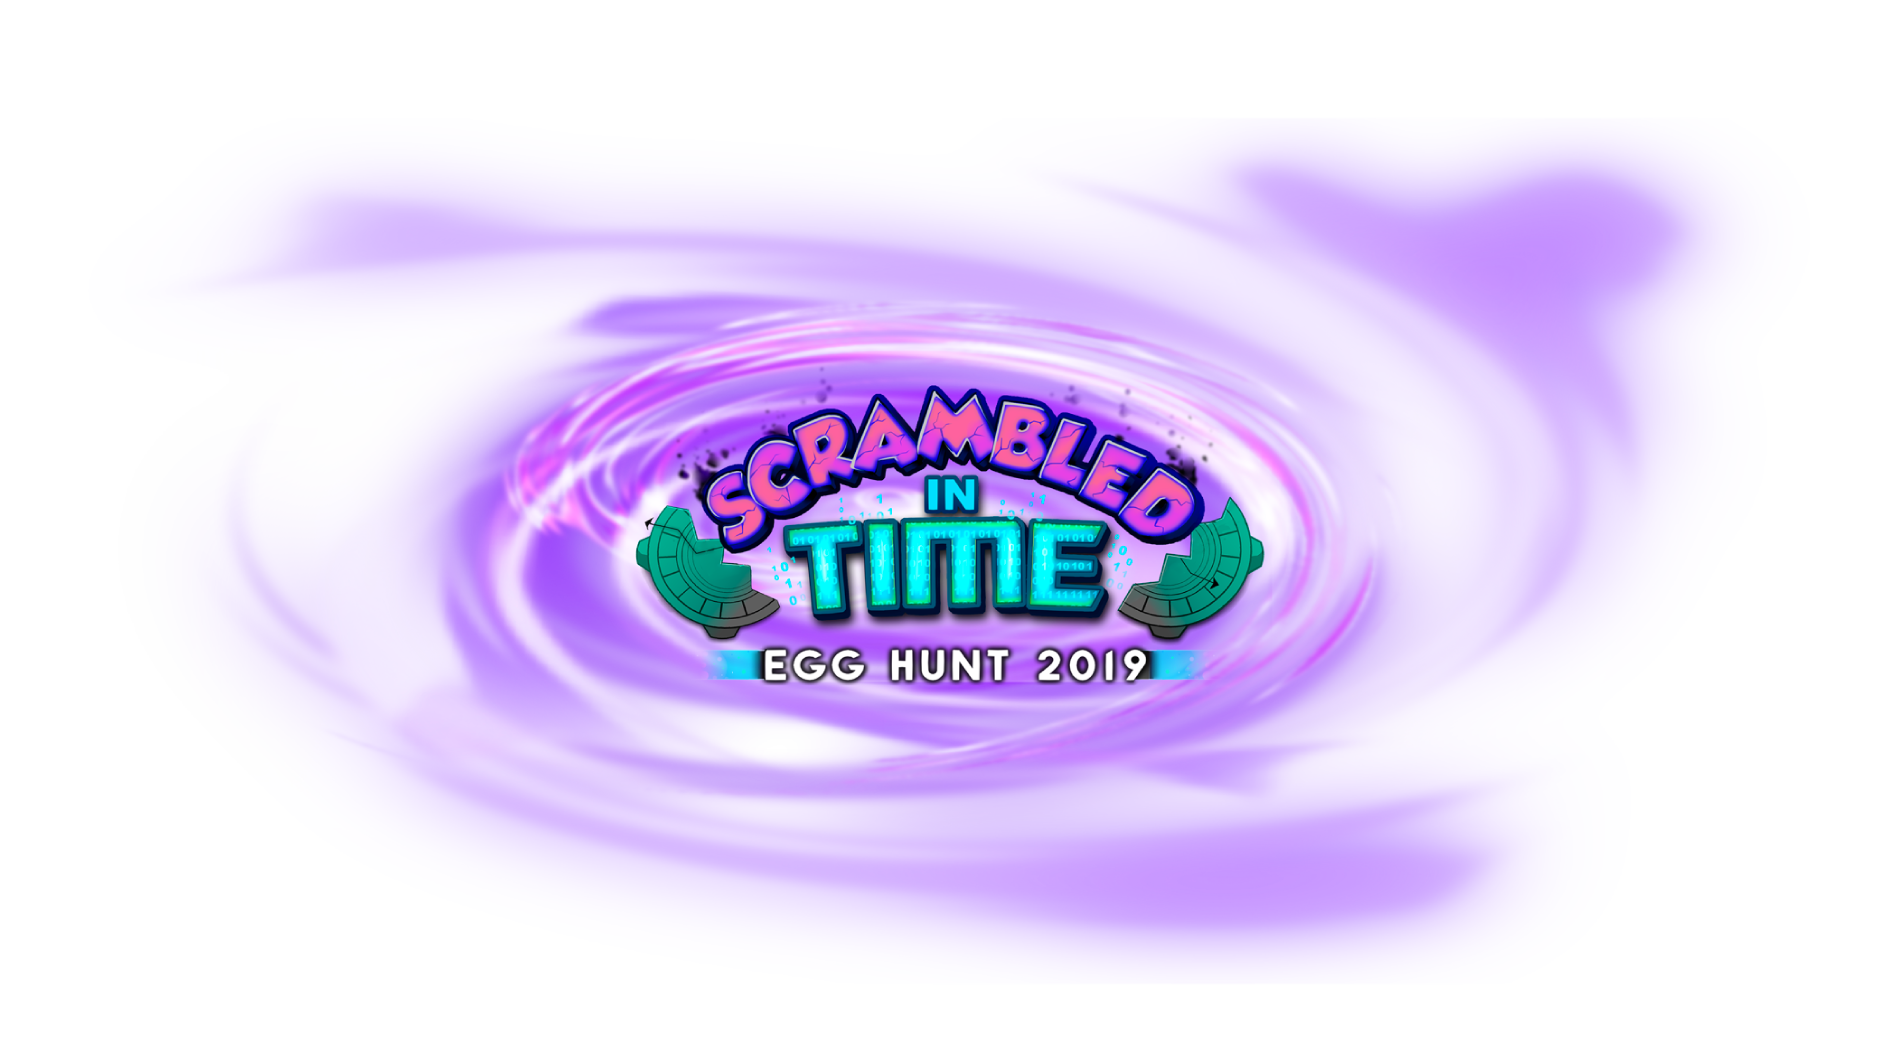 Roblox Egg Hunt 2019 Time Roblox Free Noob Accounts Egg Hunt 2019 Scrambled In Time Roblox Wikia Fandom